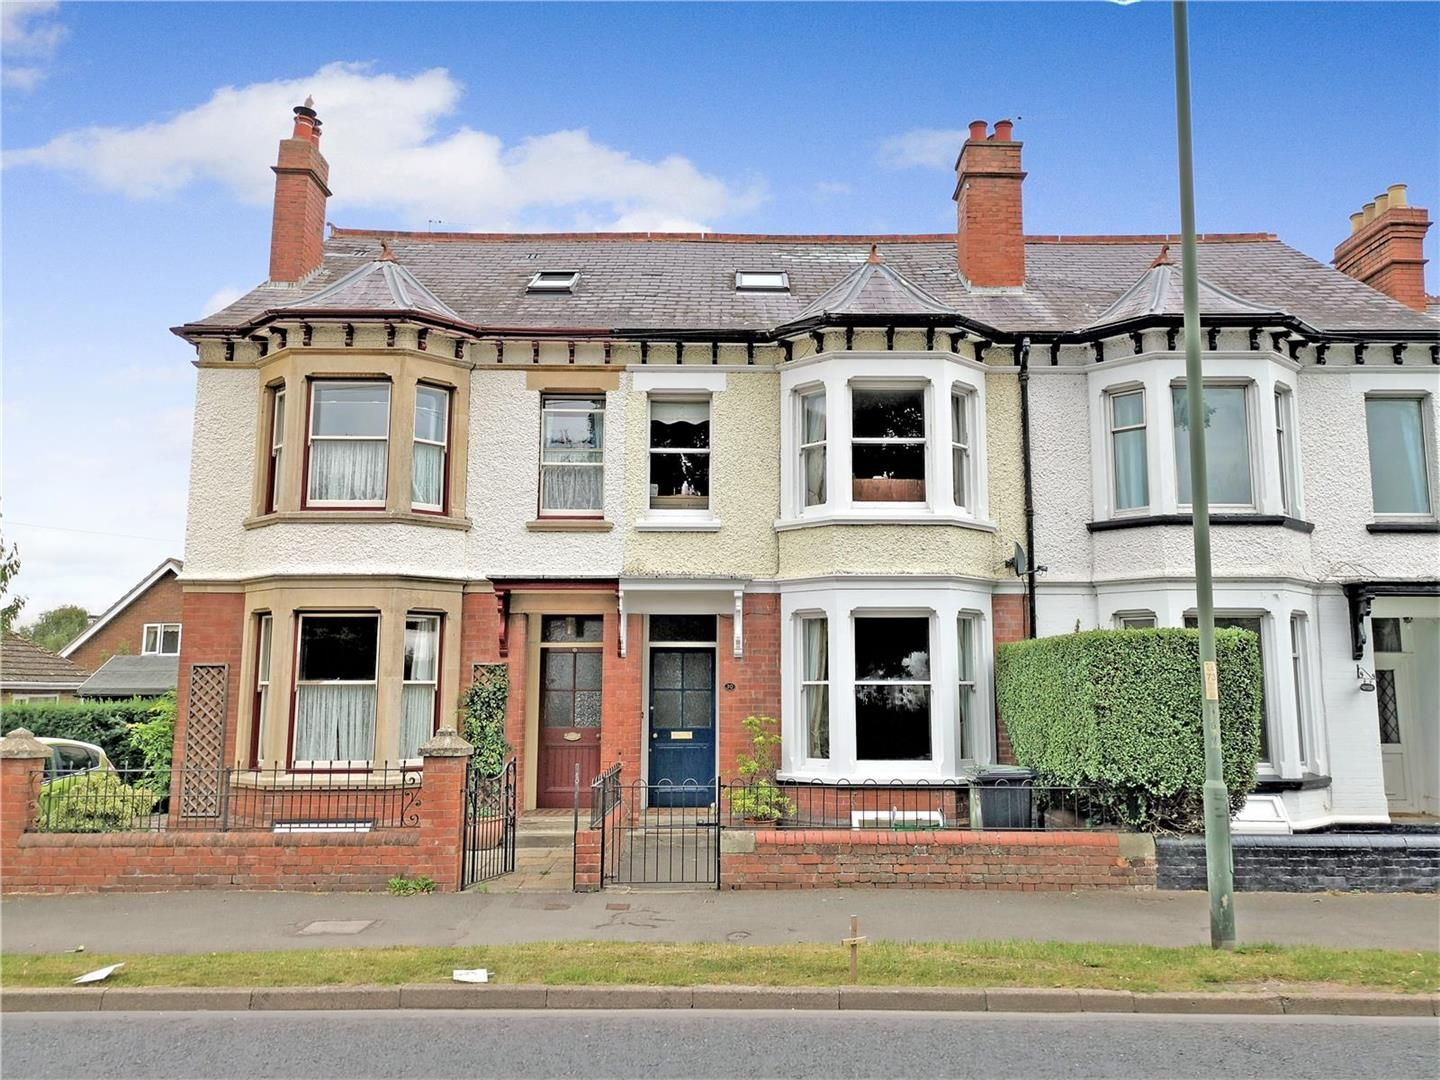 5 bed terraced for sale, HR4